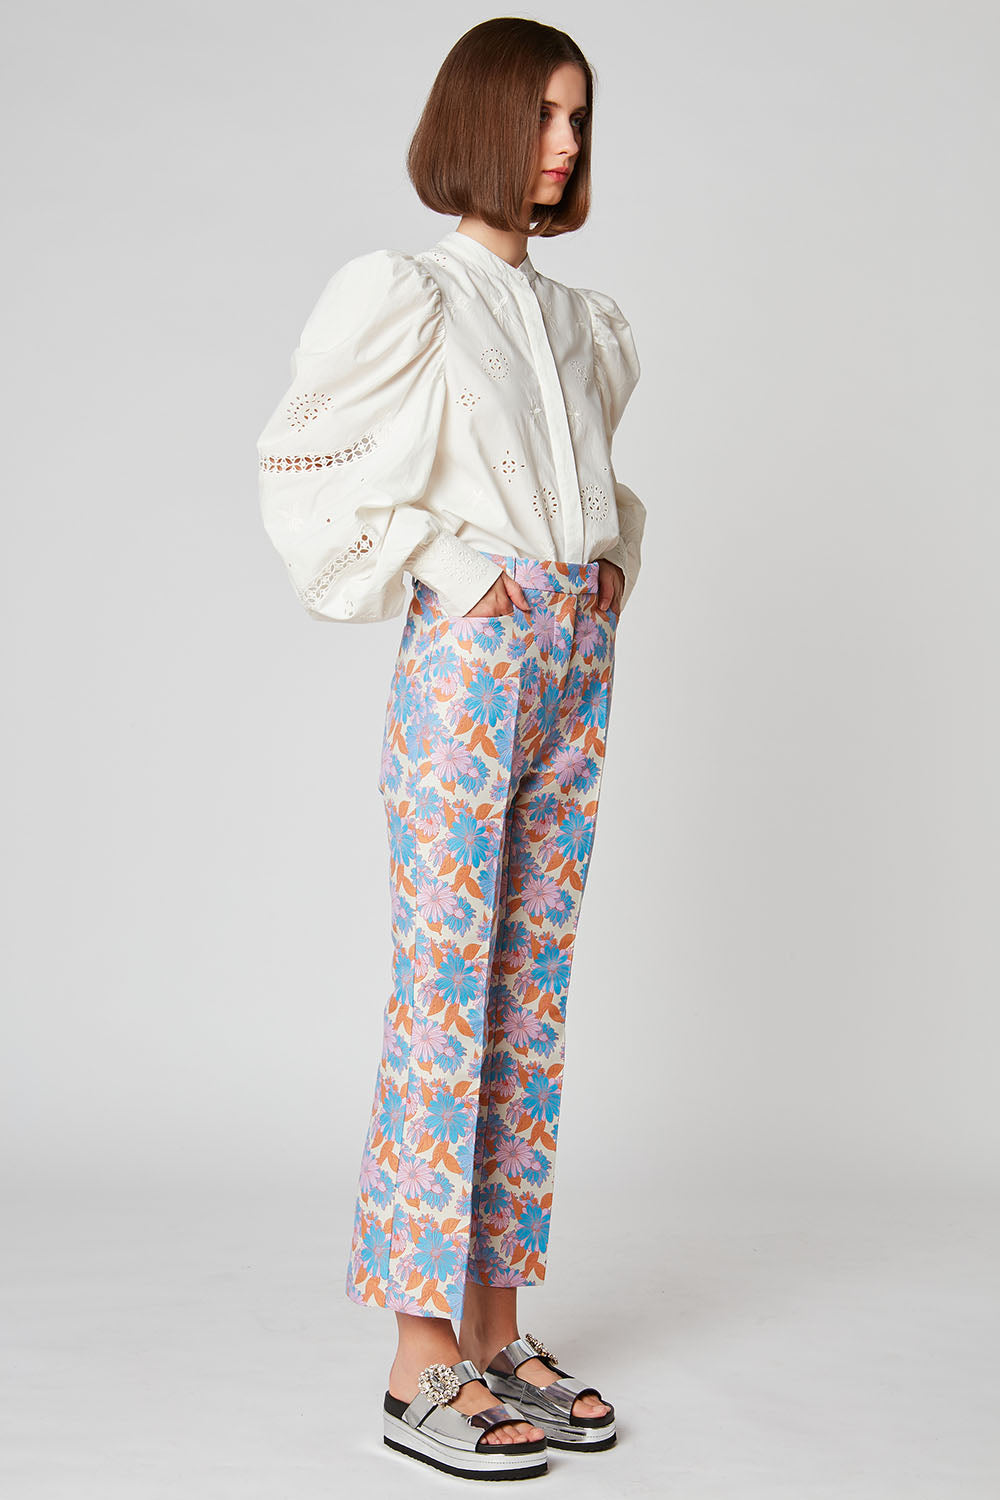 High-waisted trousers in floral jacquard